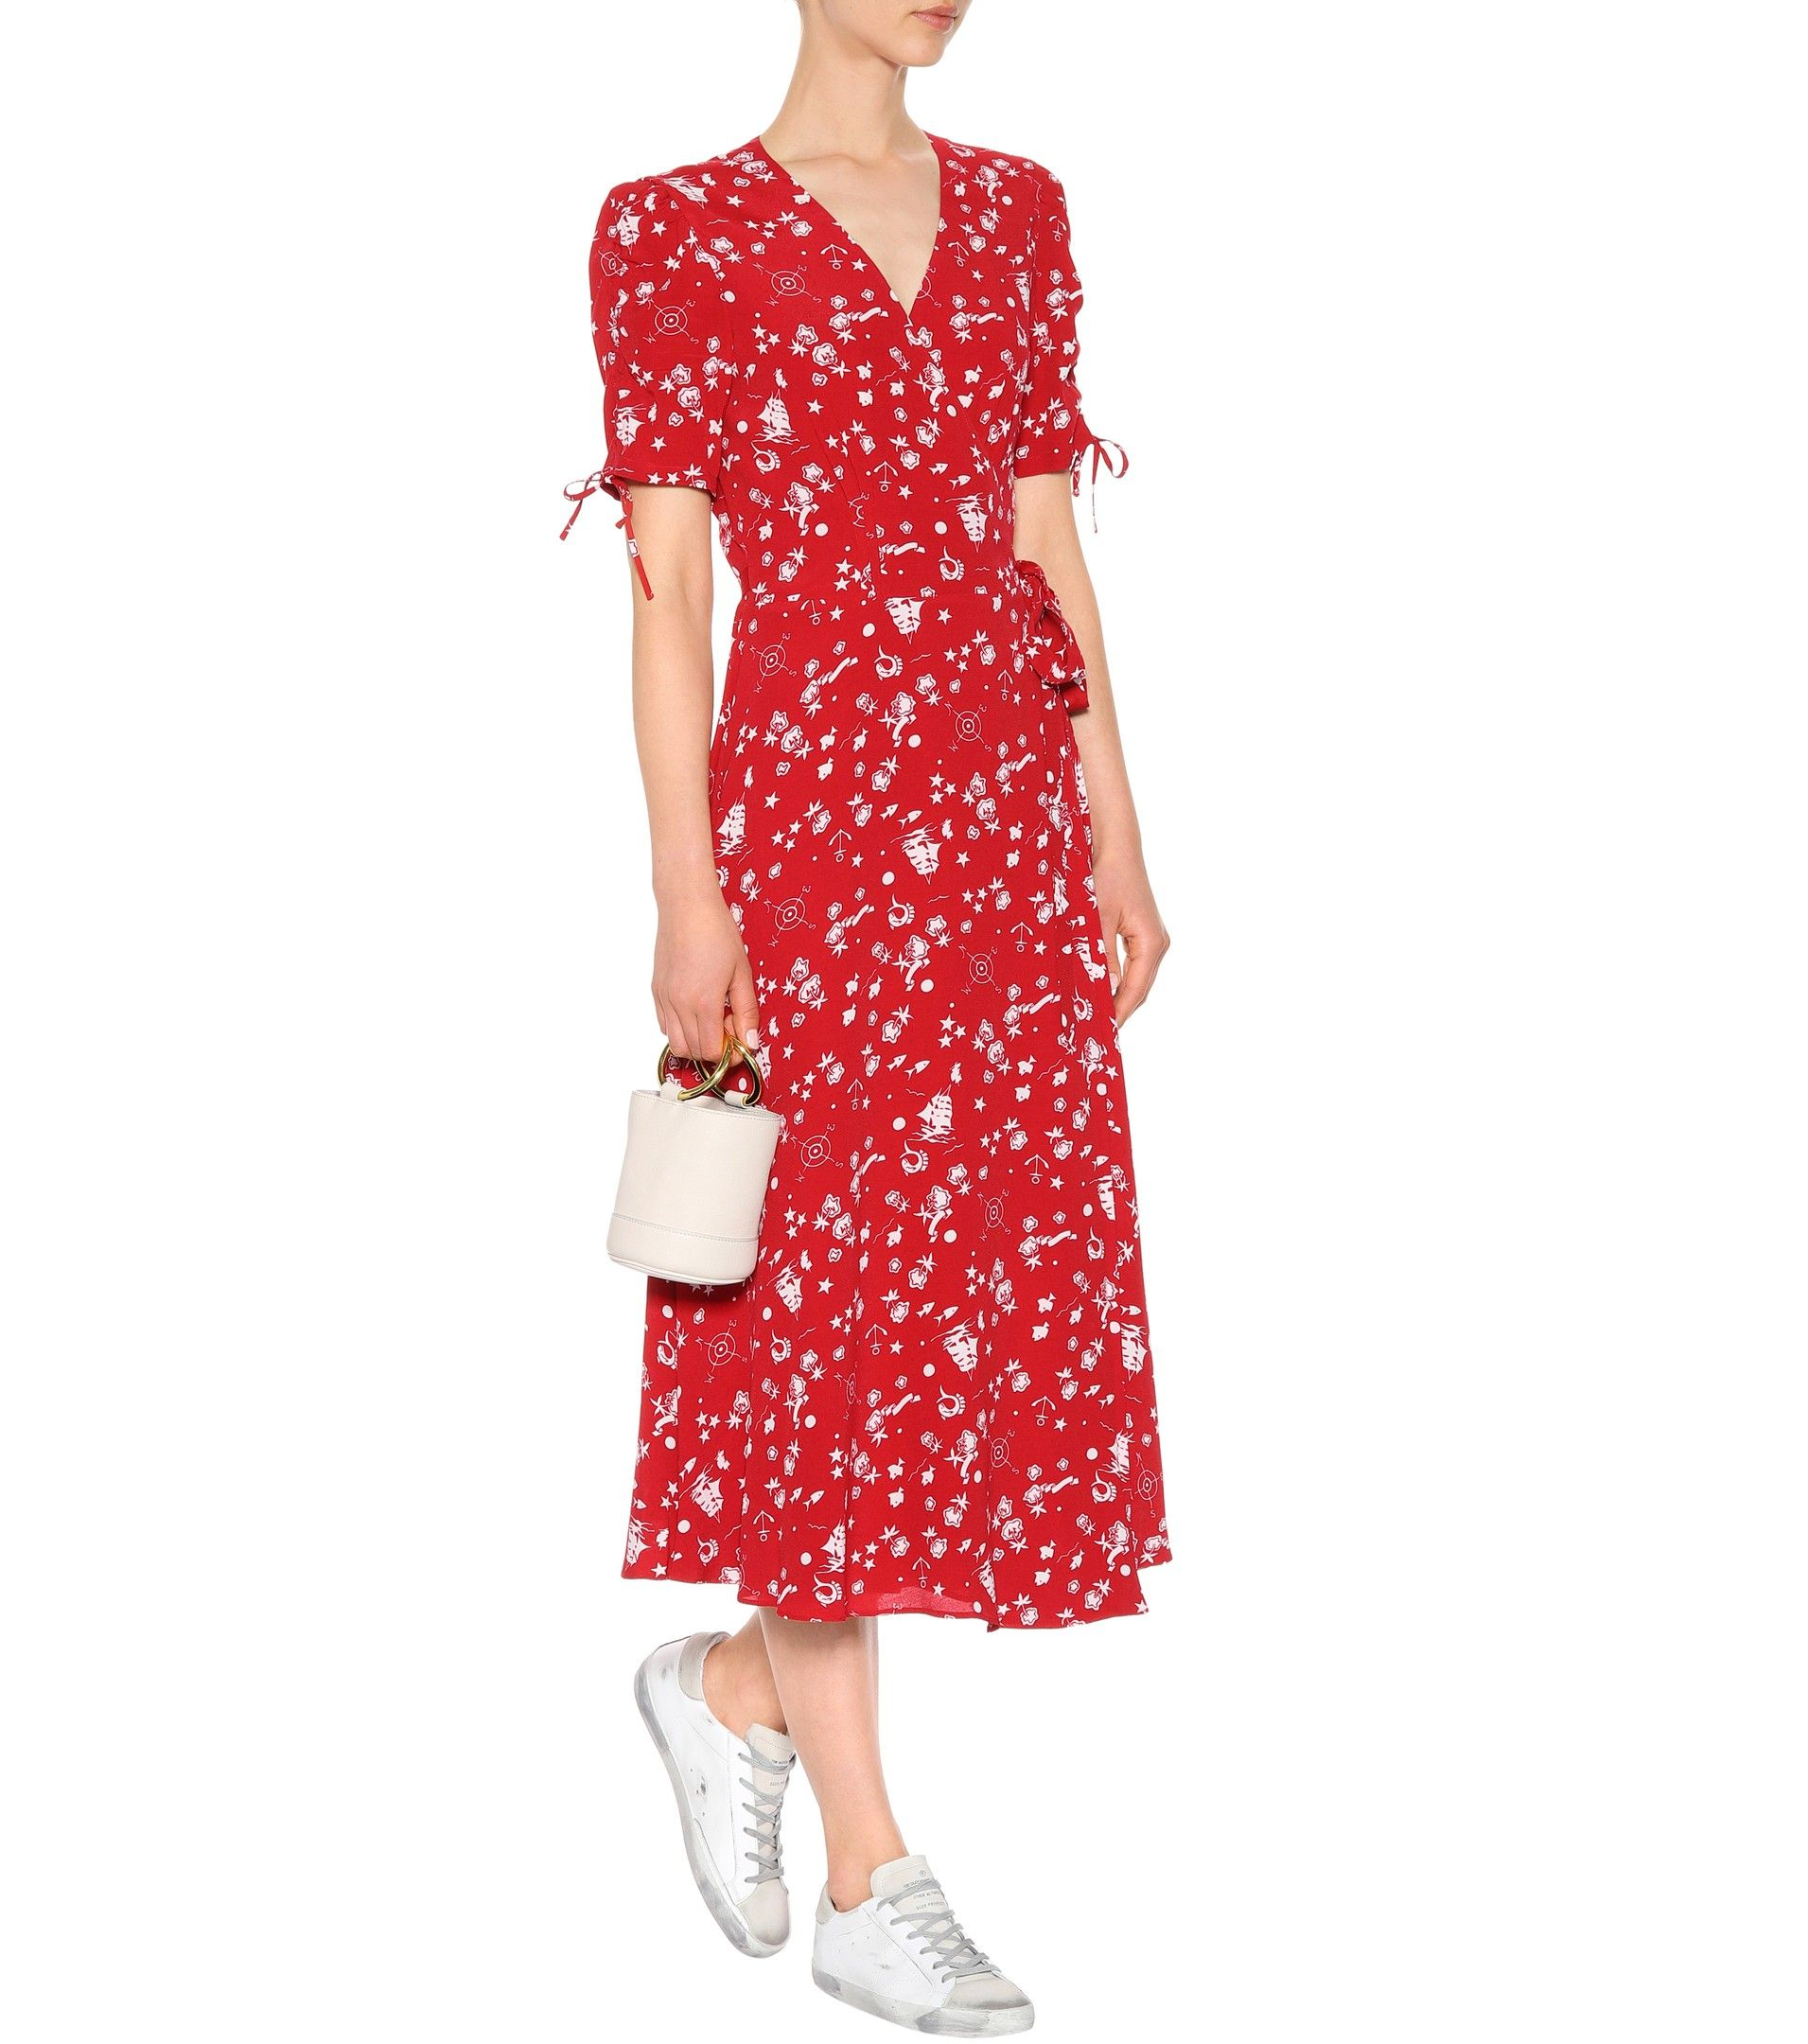 8fdf4432886 Red printed crêpe wrap dress